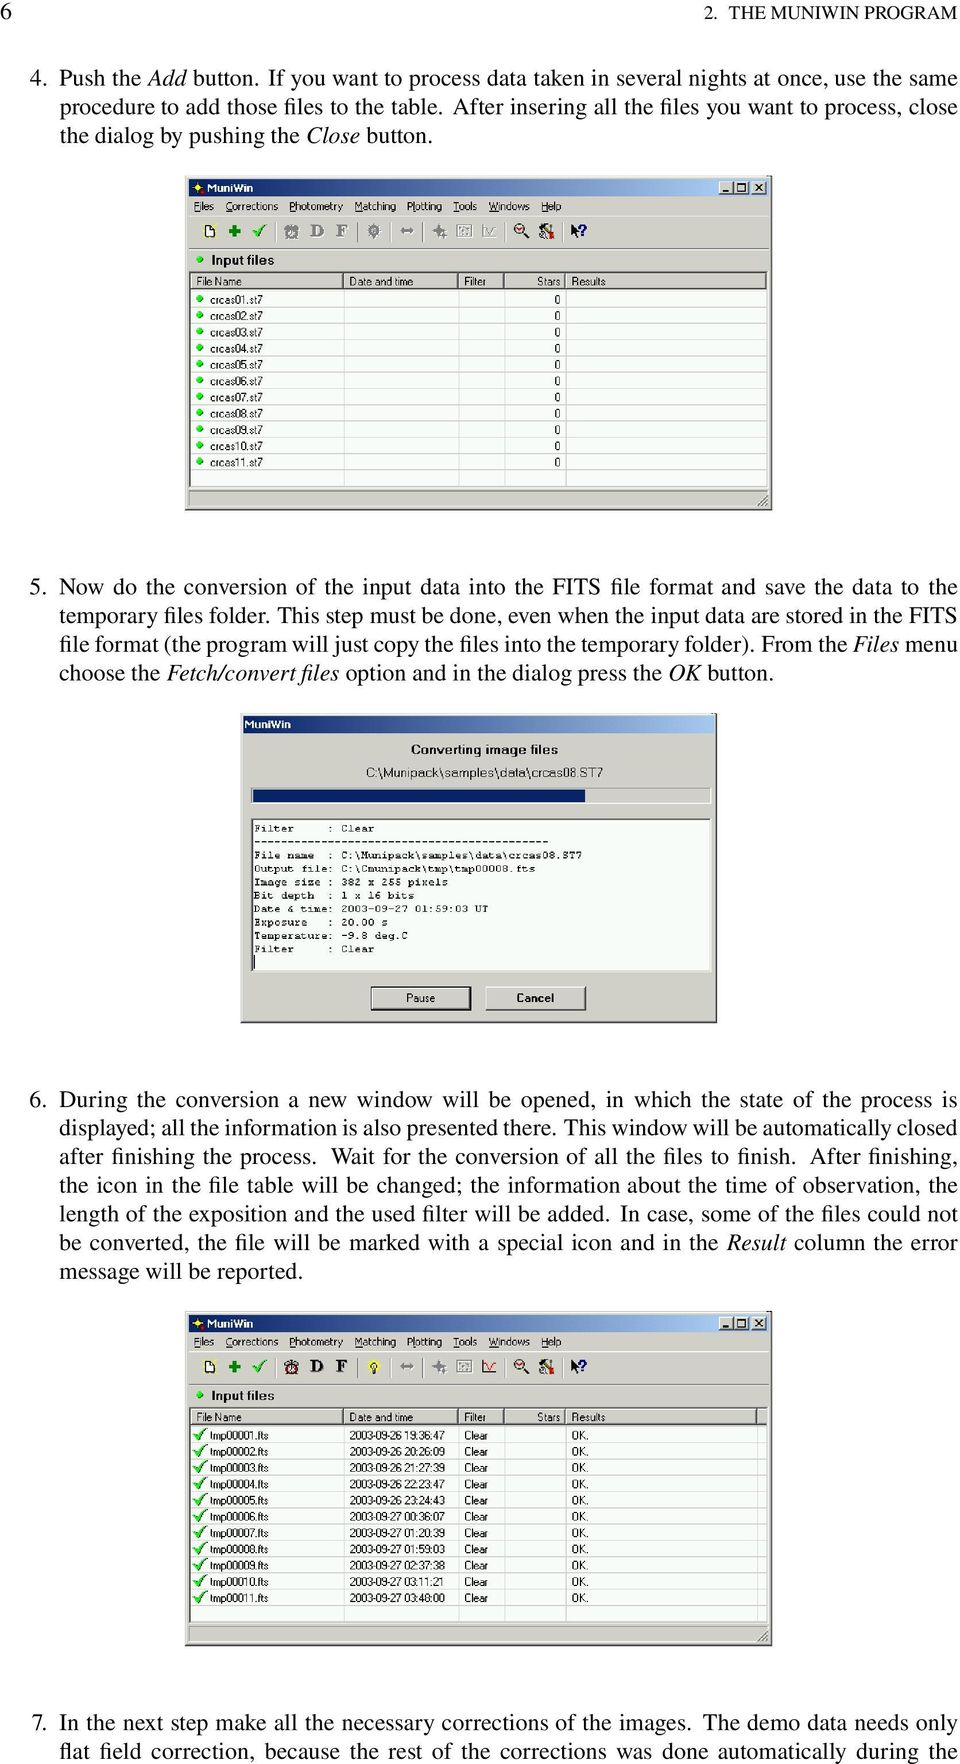 Now do the conversion of the input data into the FITS file format and save the data to the temporary files folder.